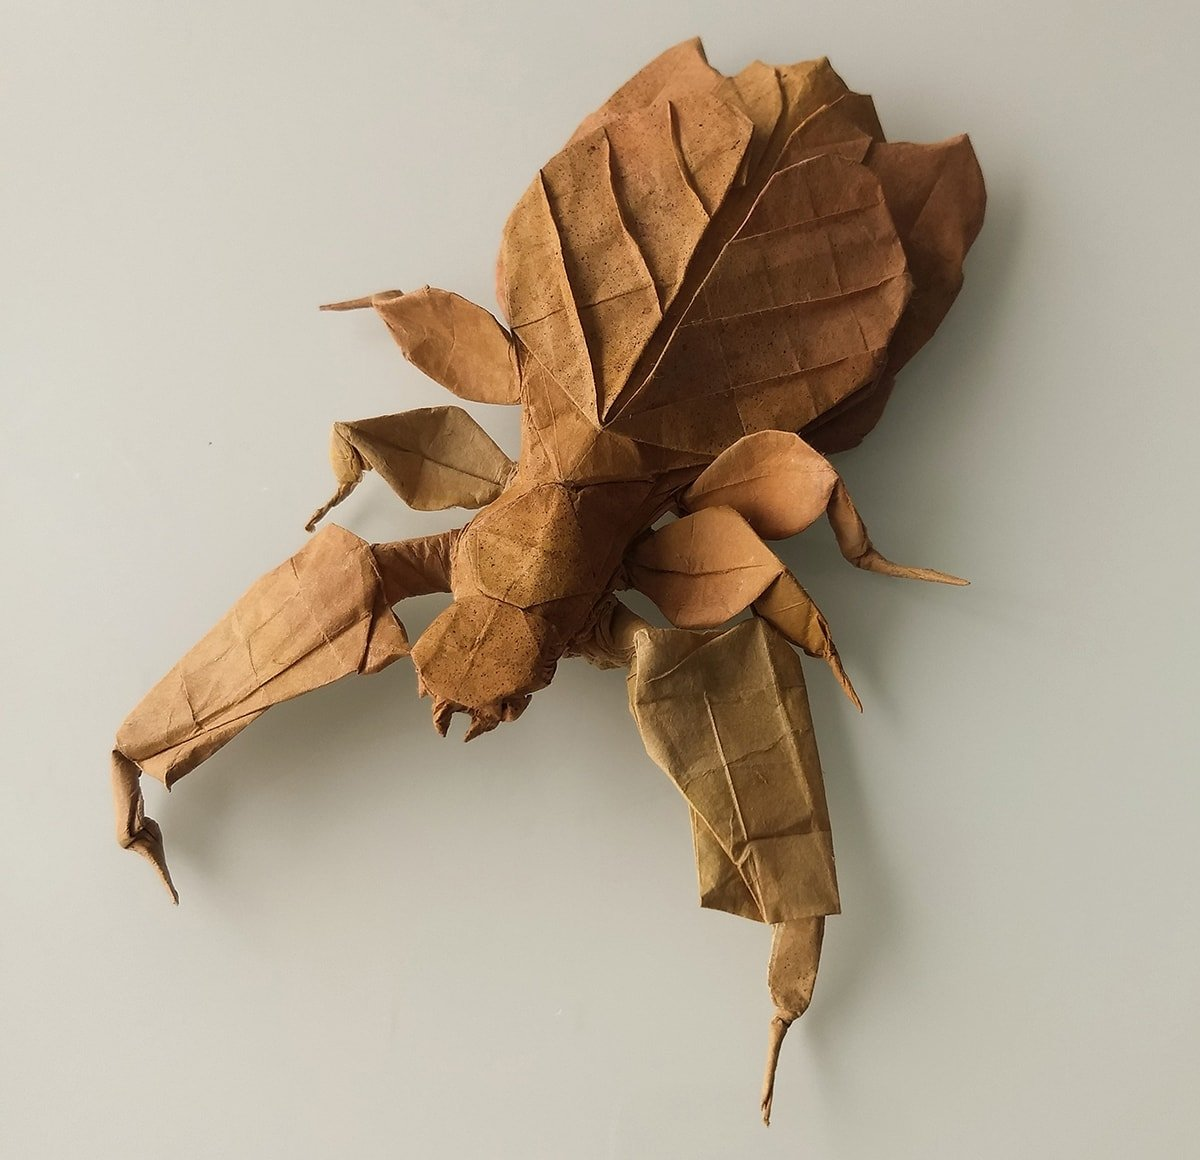 Leaf Insect by Kota Imai